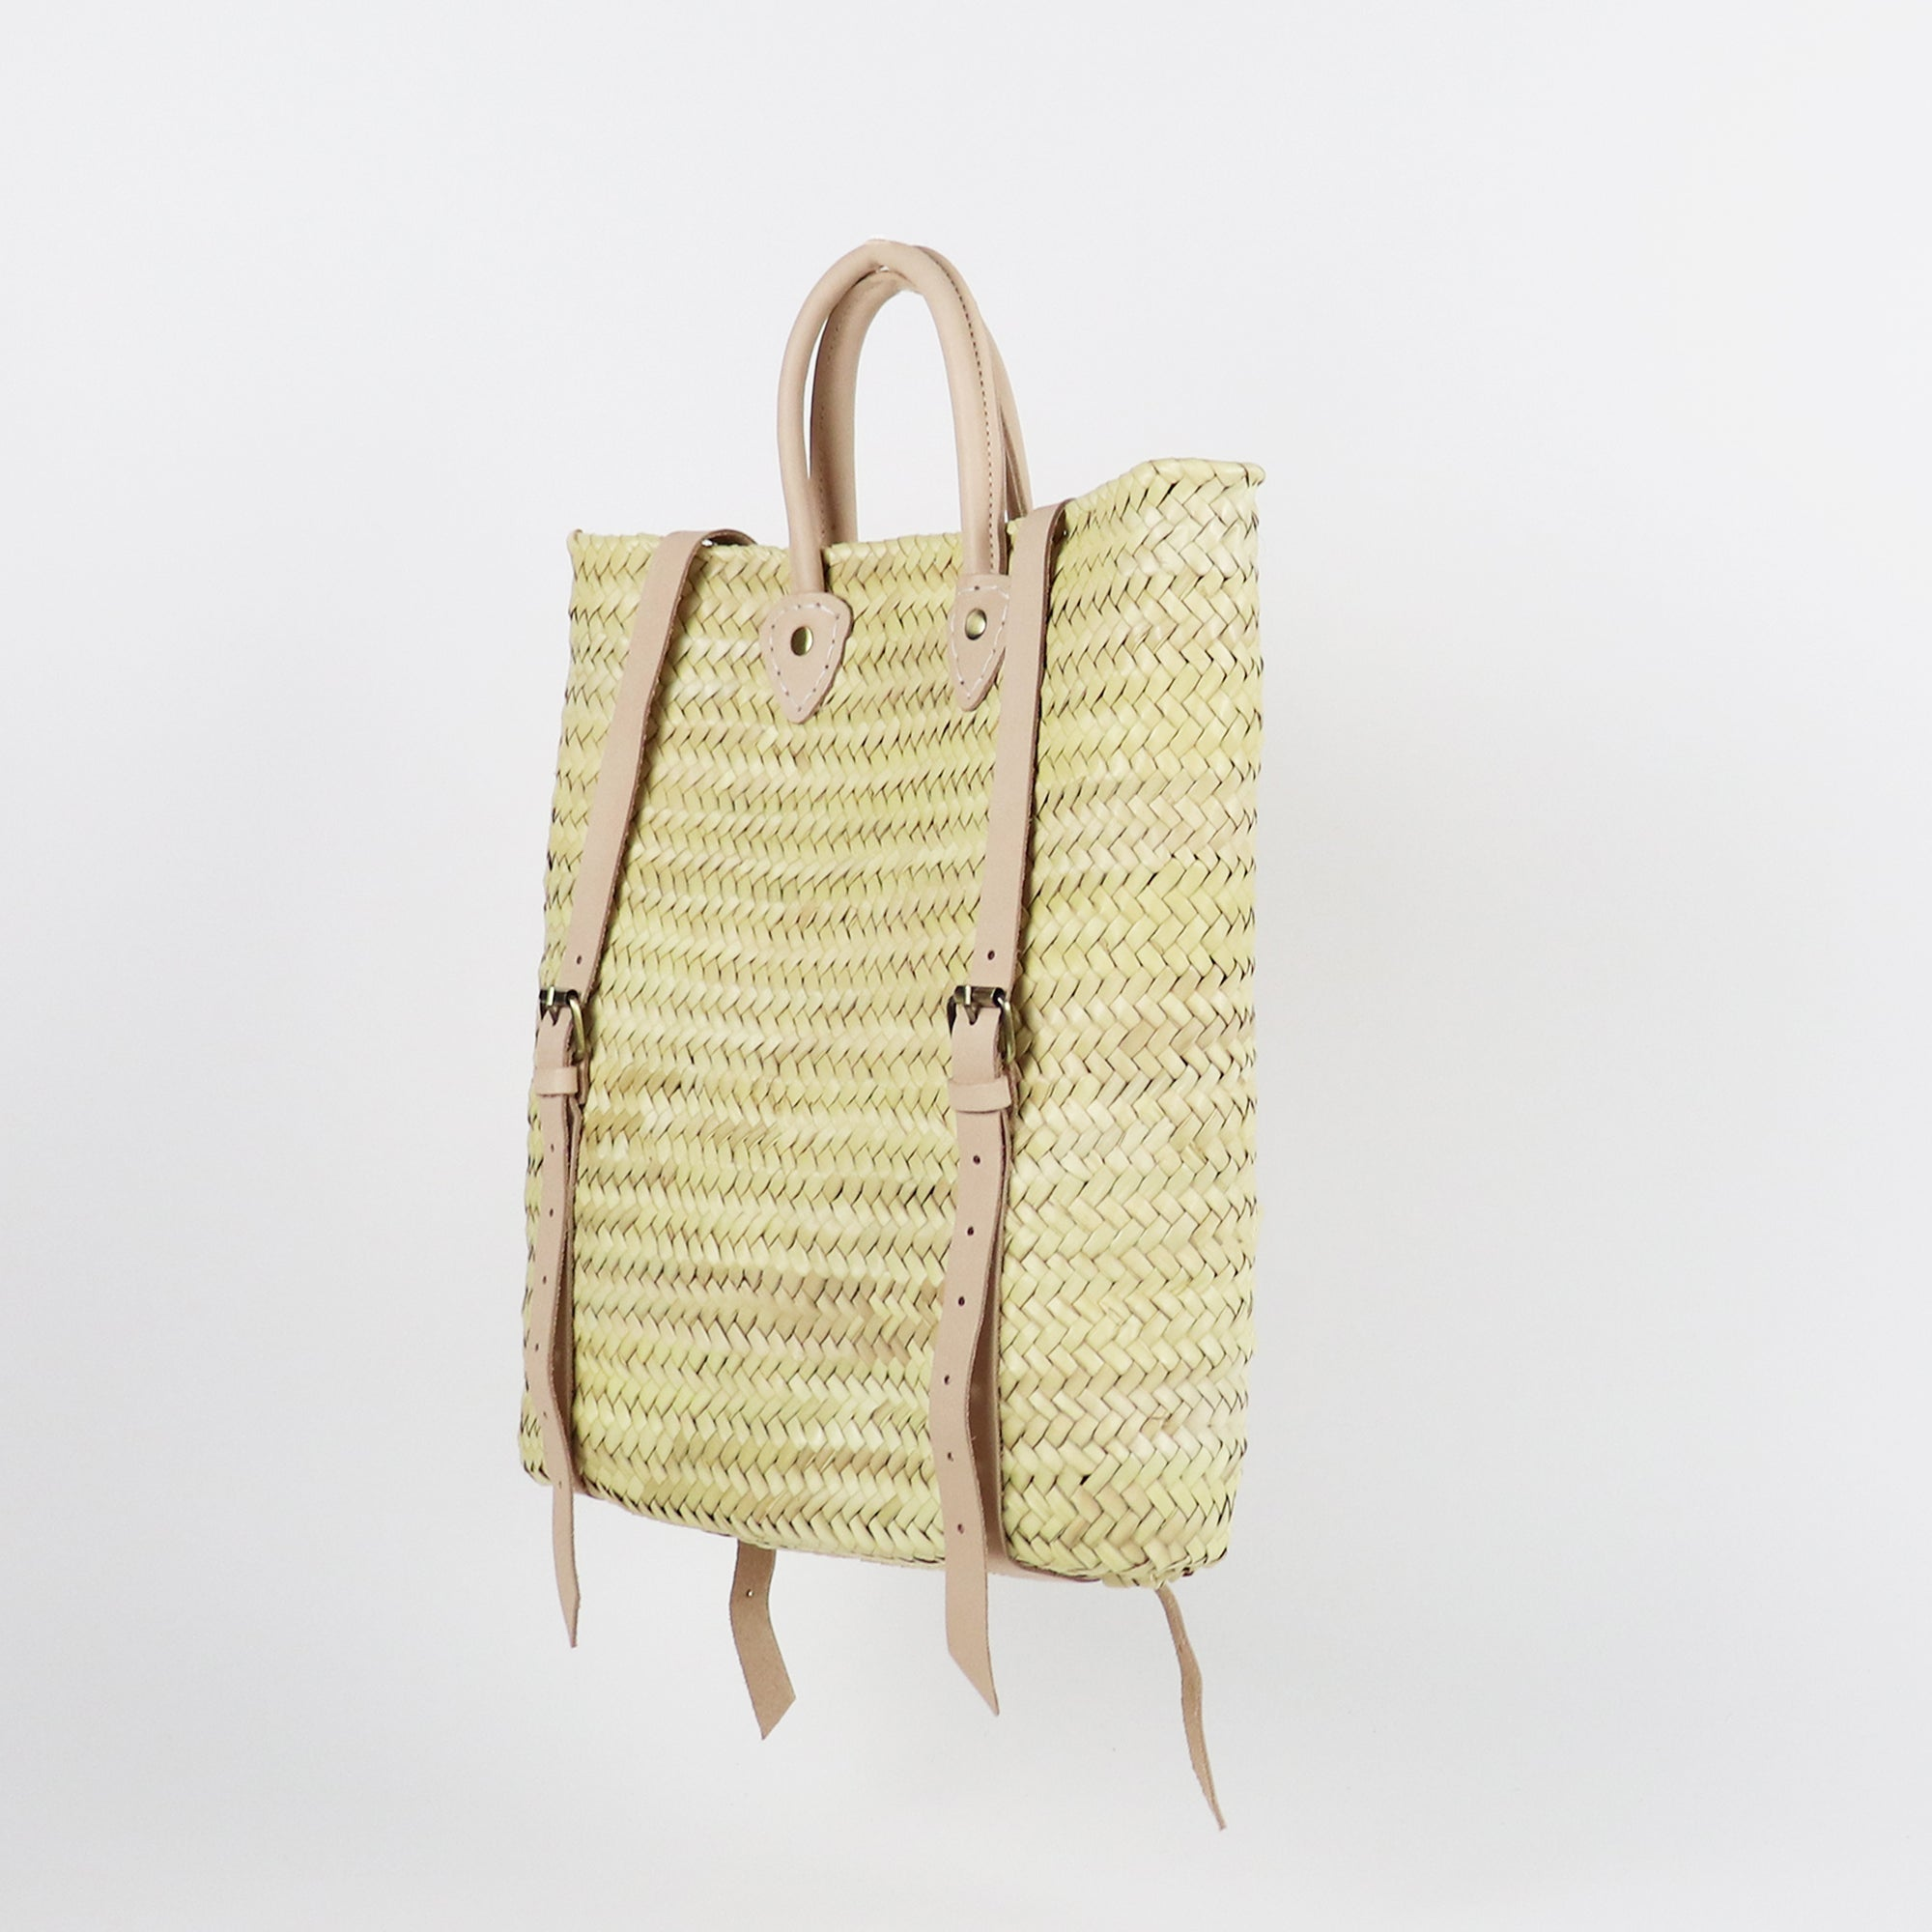 PANAMA Backpack - NATURAL